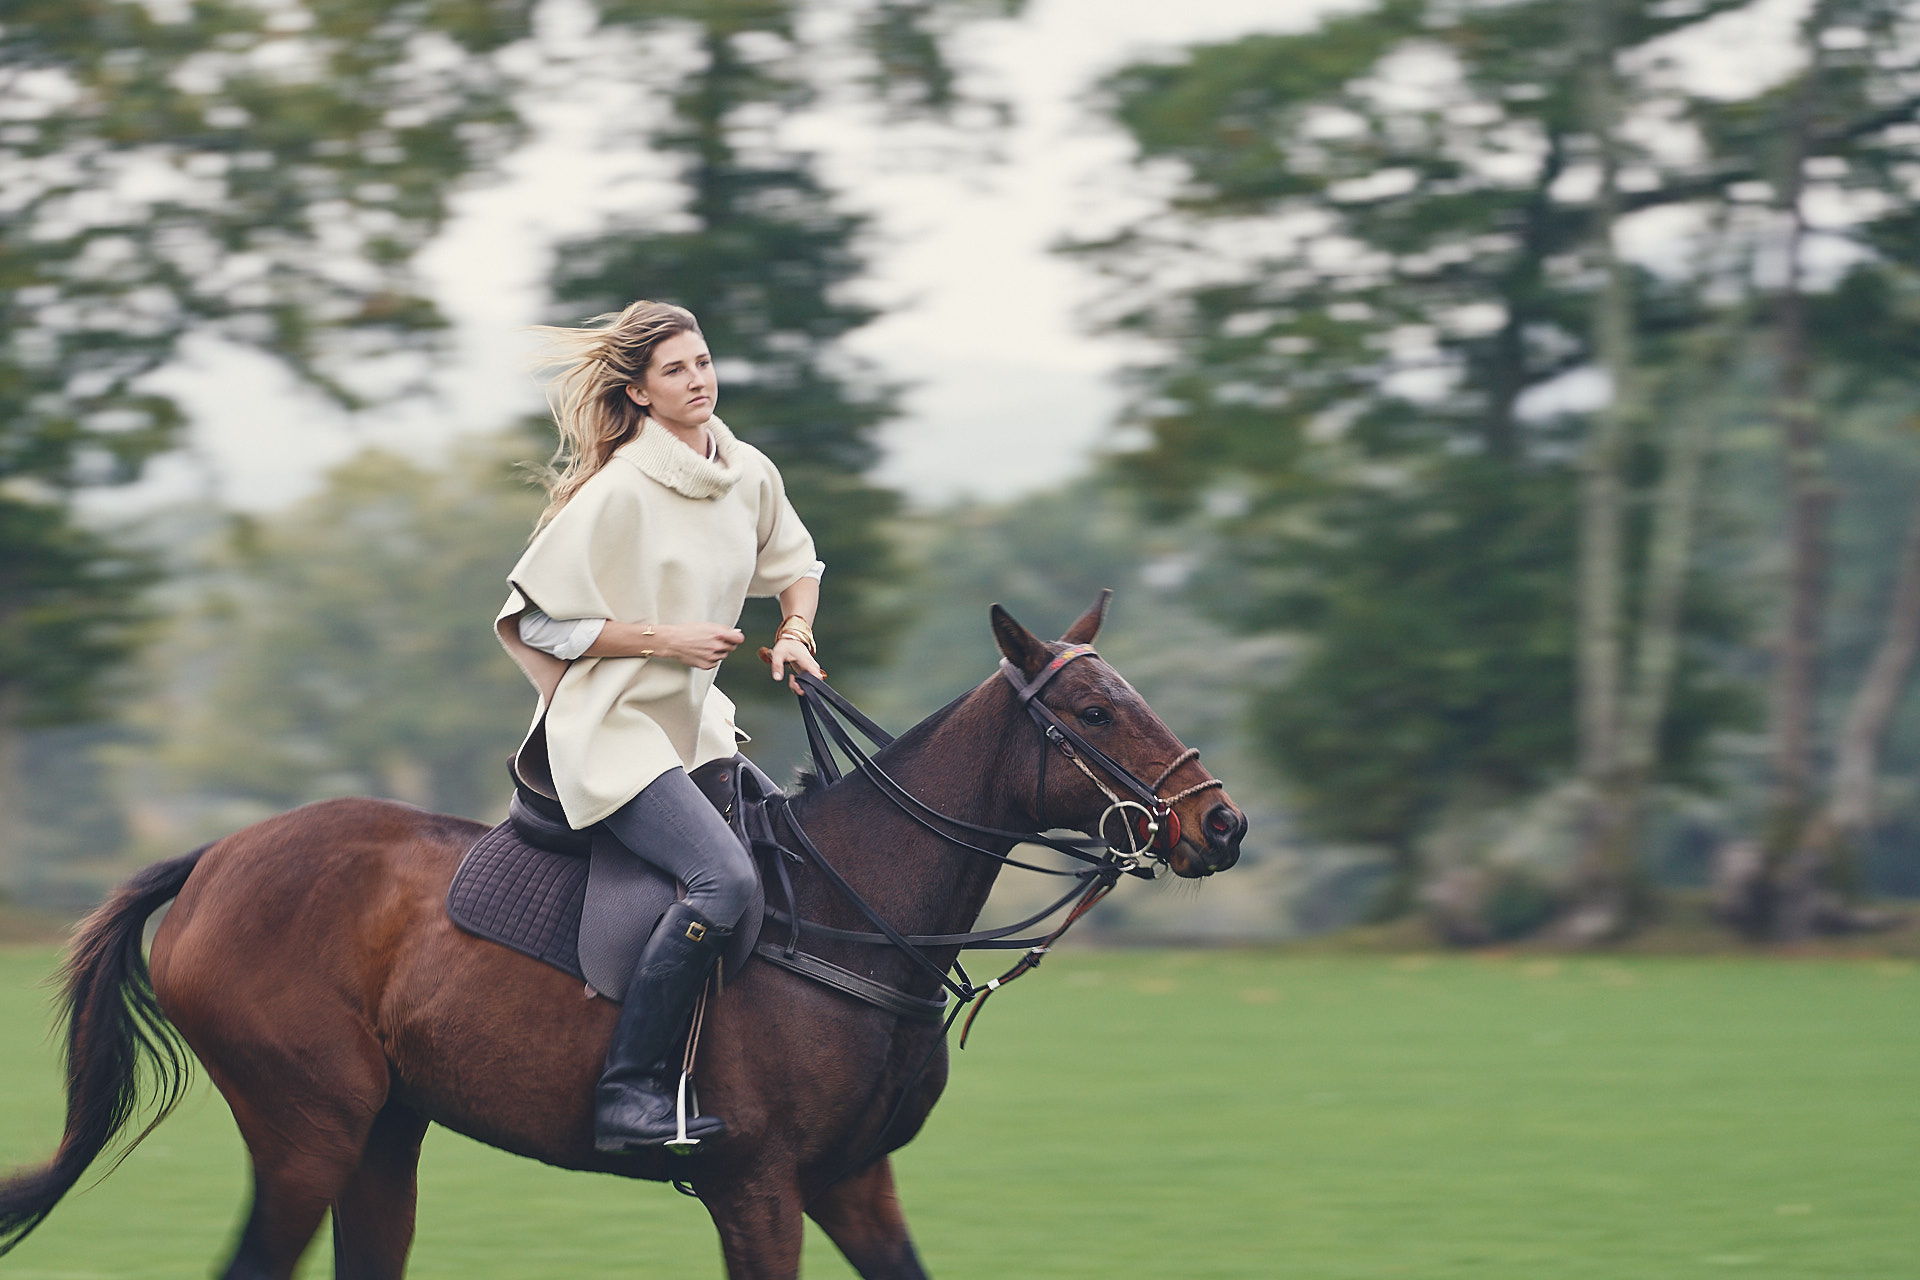 Riding a polo pony wearing a poncho by Stick & Ball English Photo Shoot